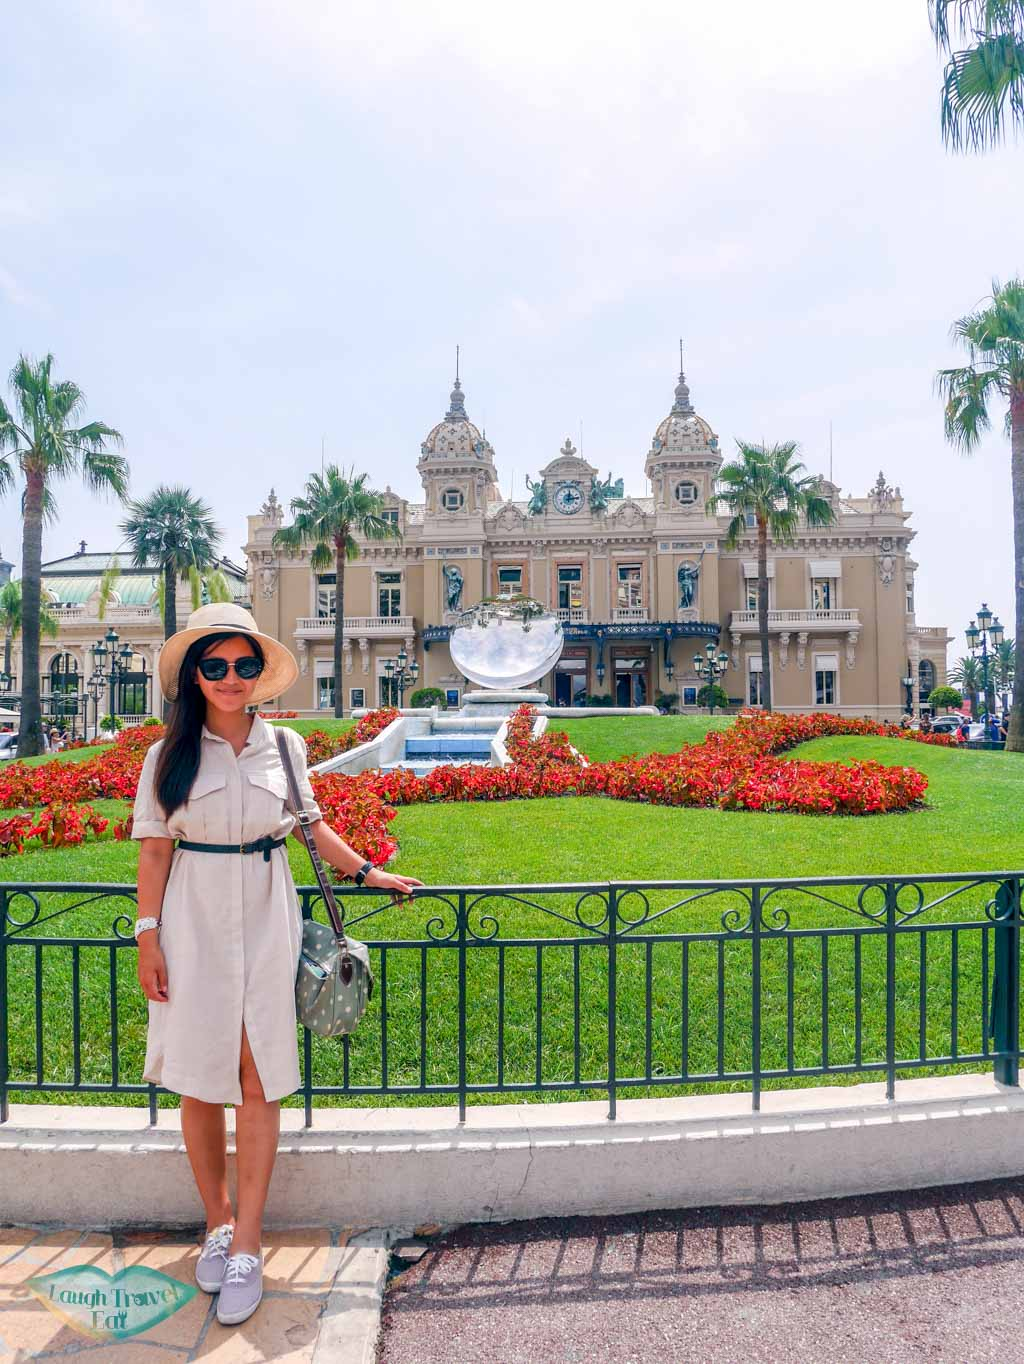 casino square monaco | Laugh Travel Eat